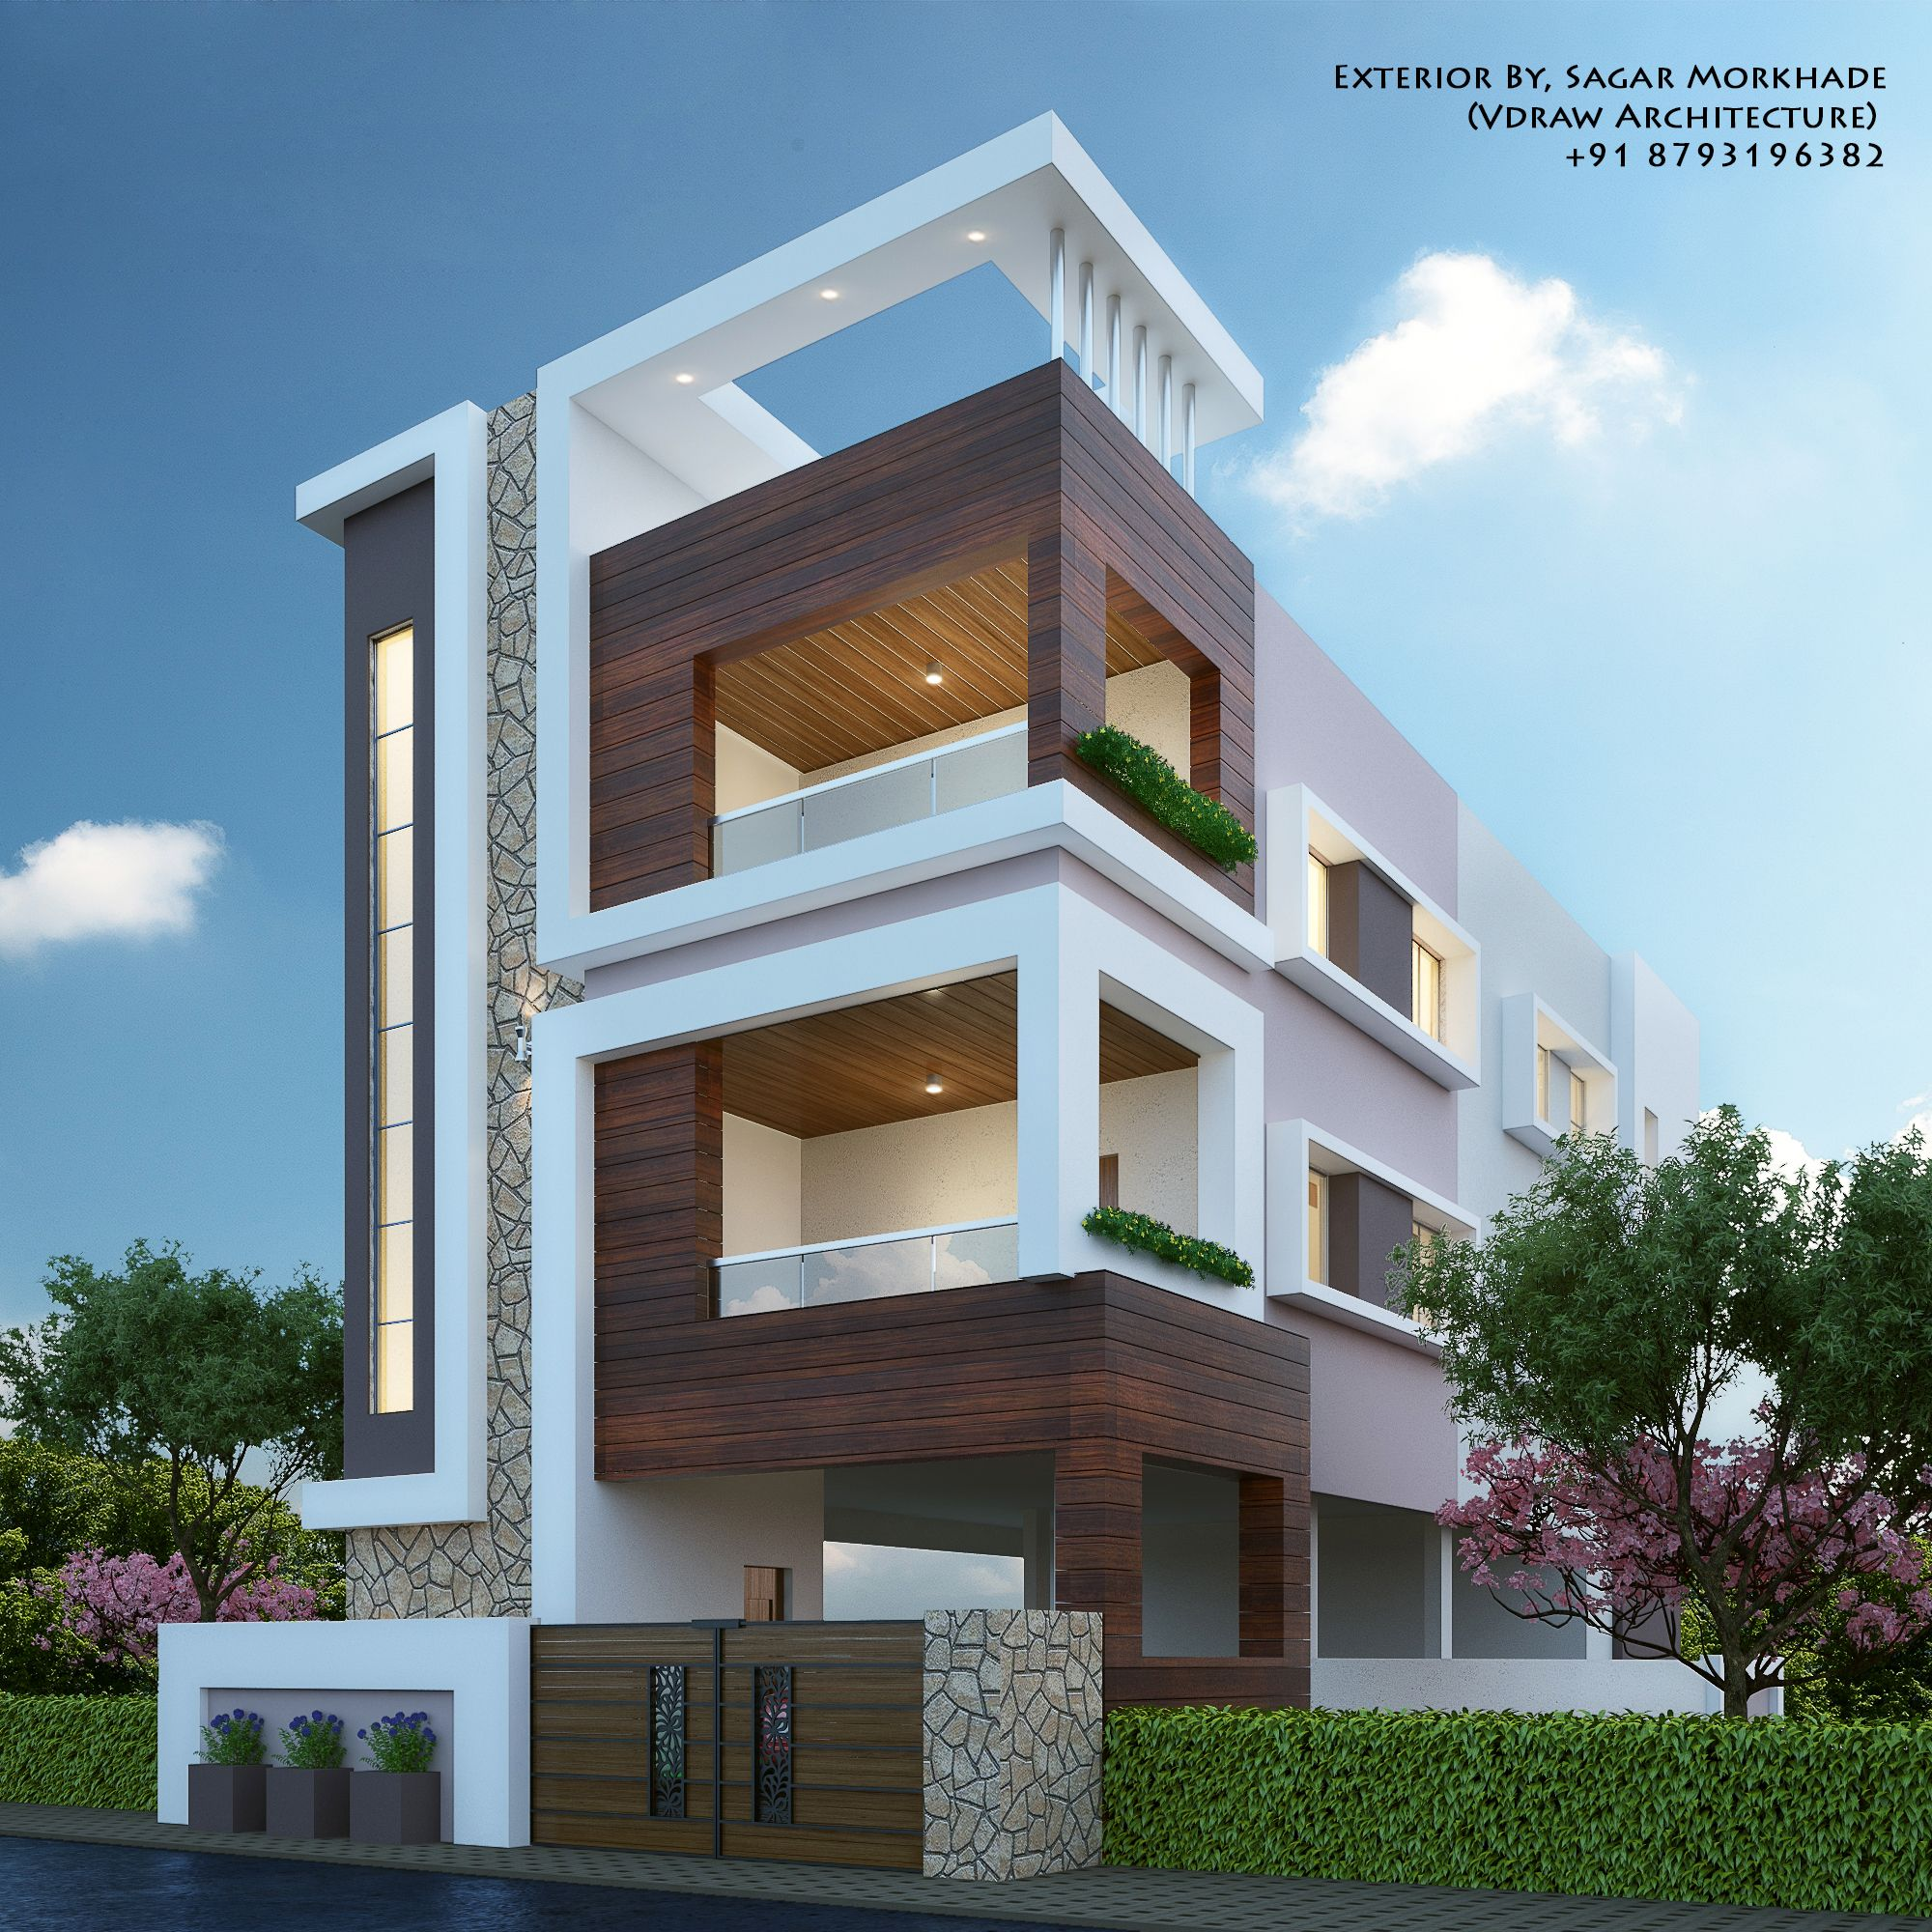 Home Design Exterior Ideas In India: Modern House Bungalow Exterior By, Sagar Morkhade (Vdraw